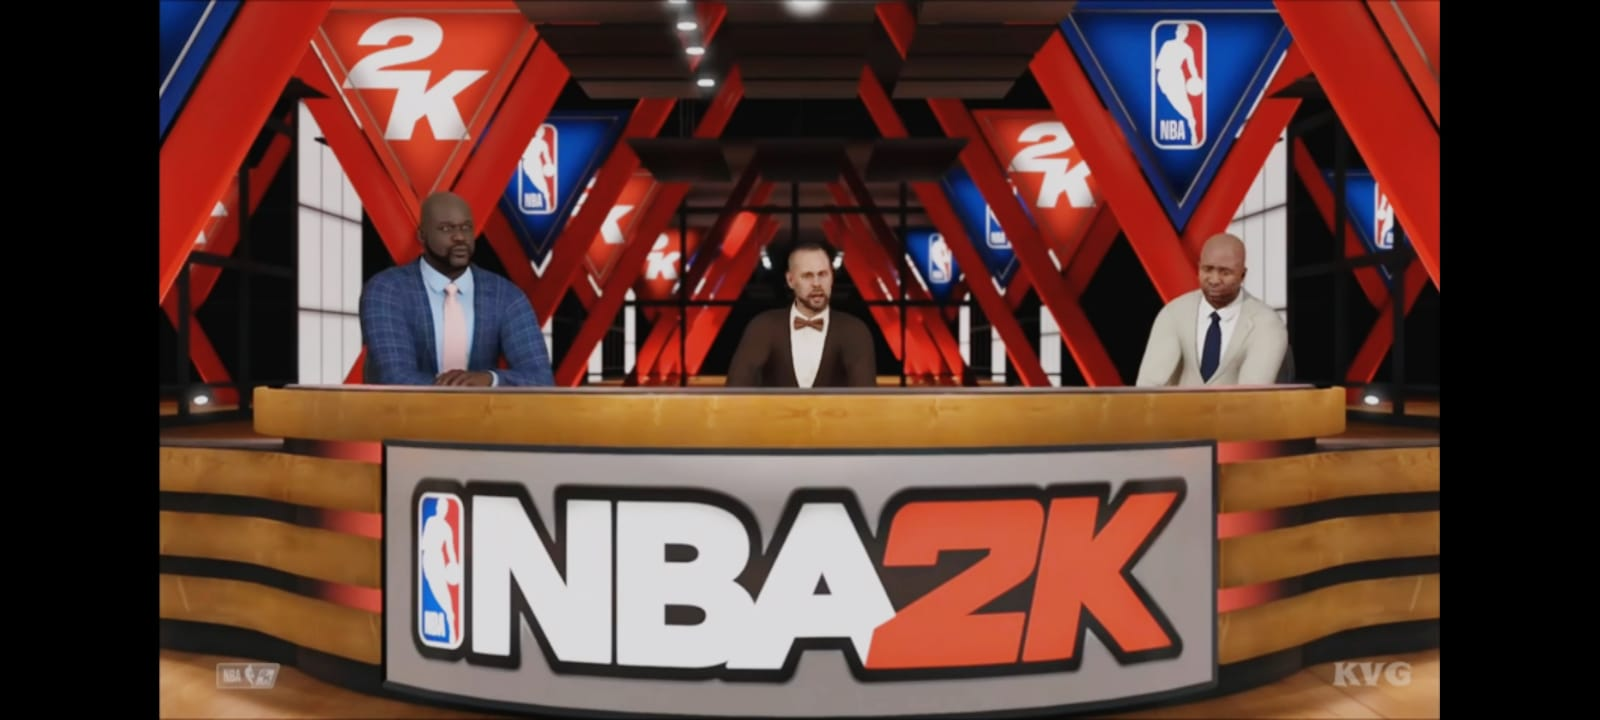 NBA 2k20 APK v98.0.2 Free Download For Android Latest 2021 1